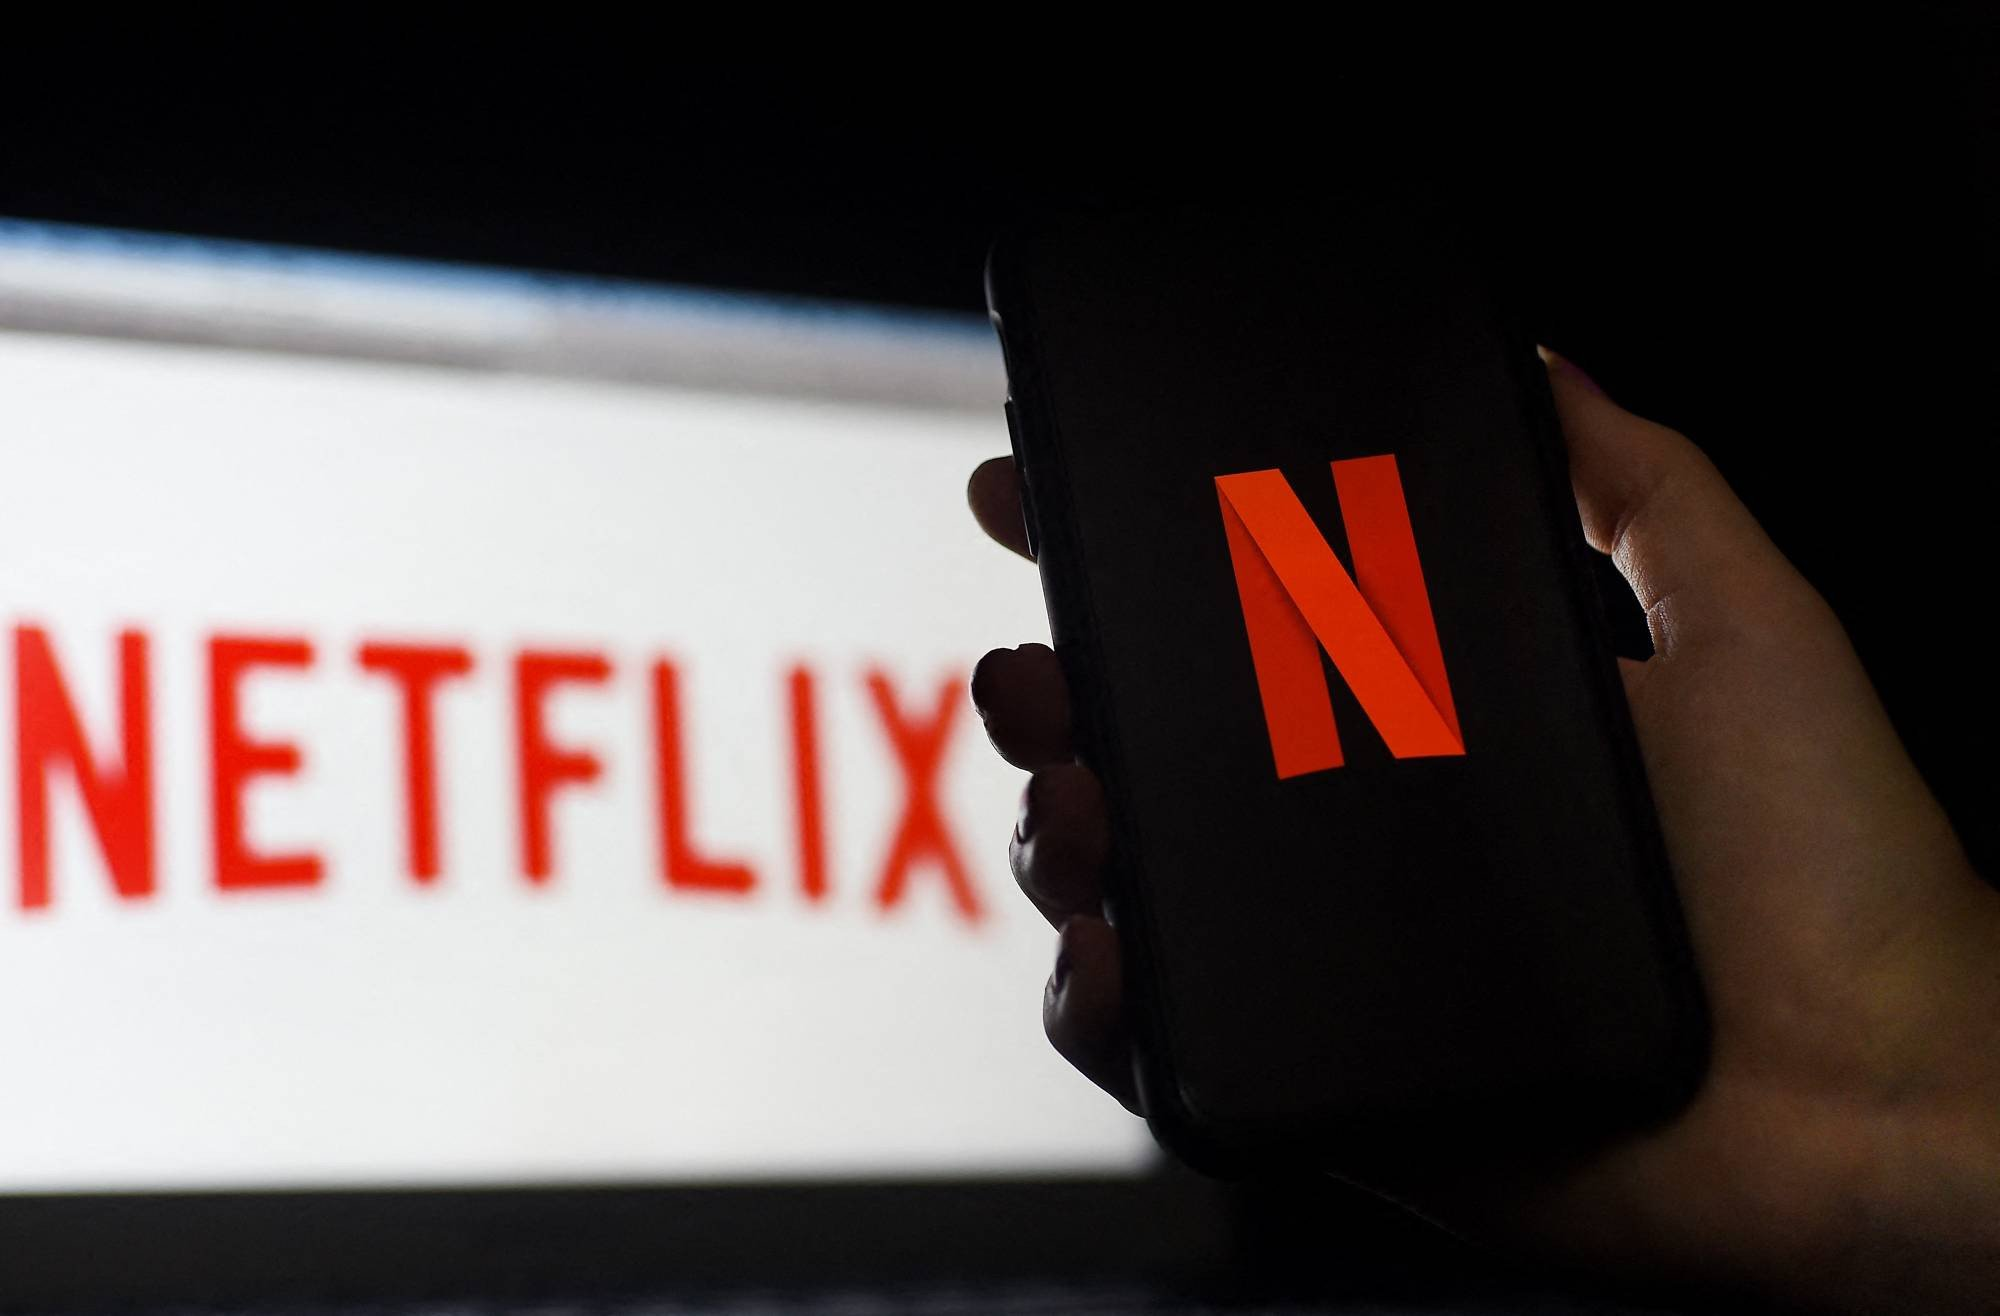 Netflix subscribers will soon be able to play games